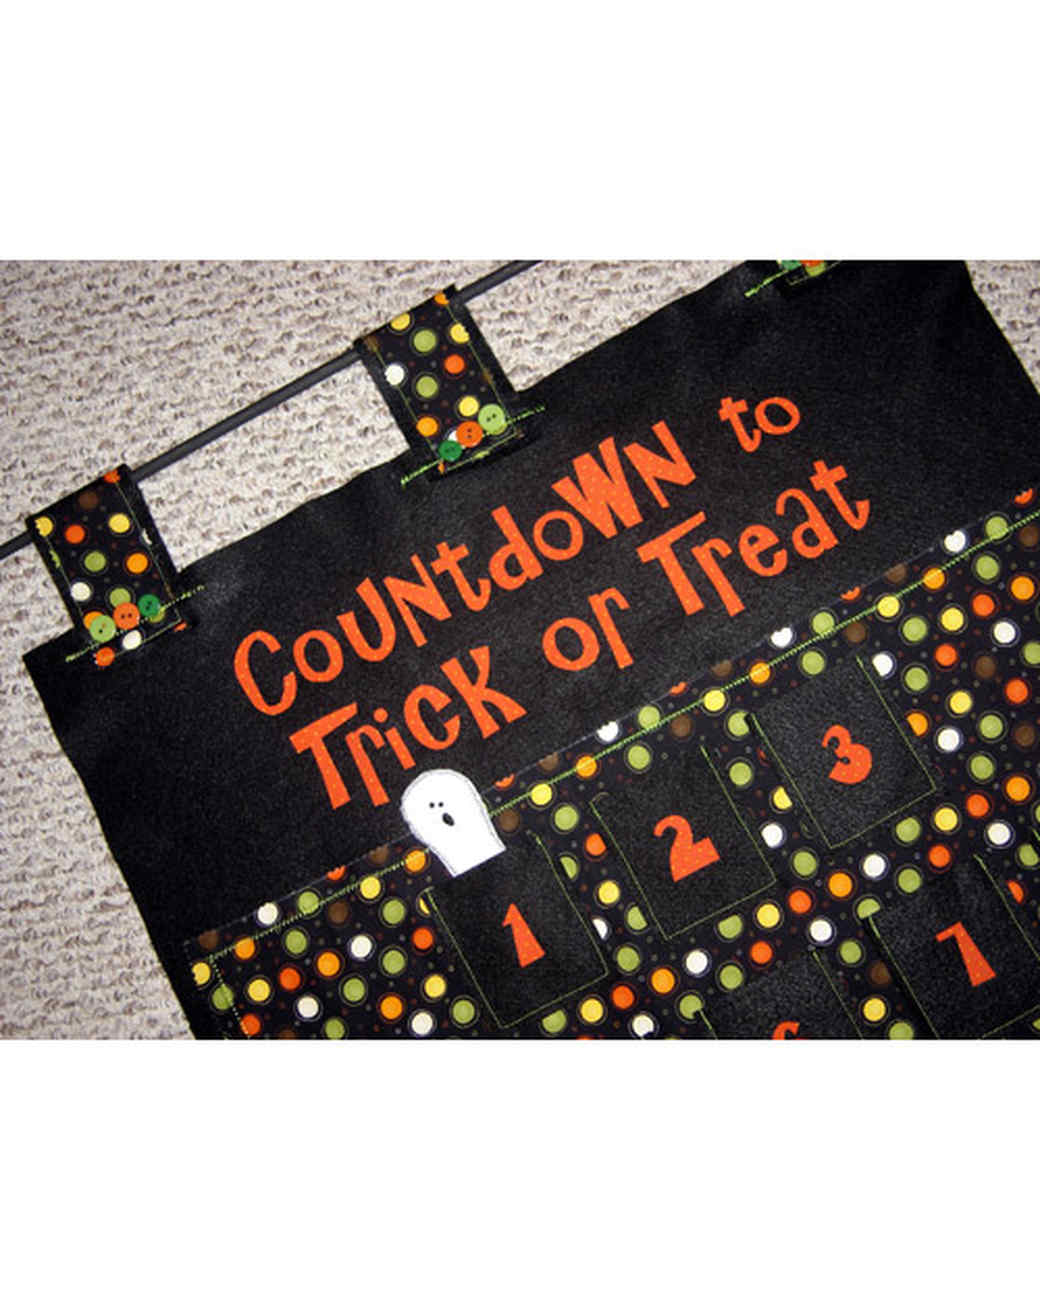 best_of_halloween09_countdown.jpg